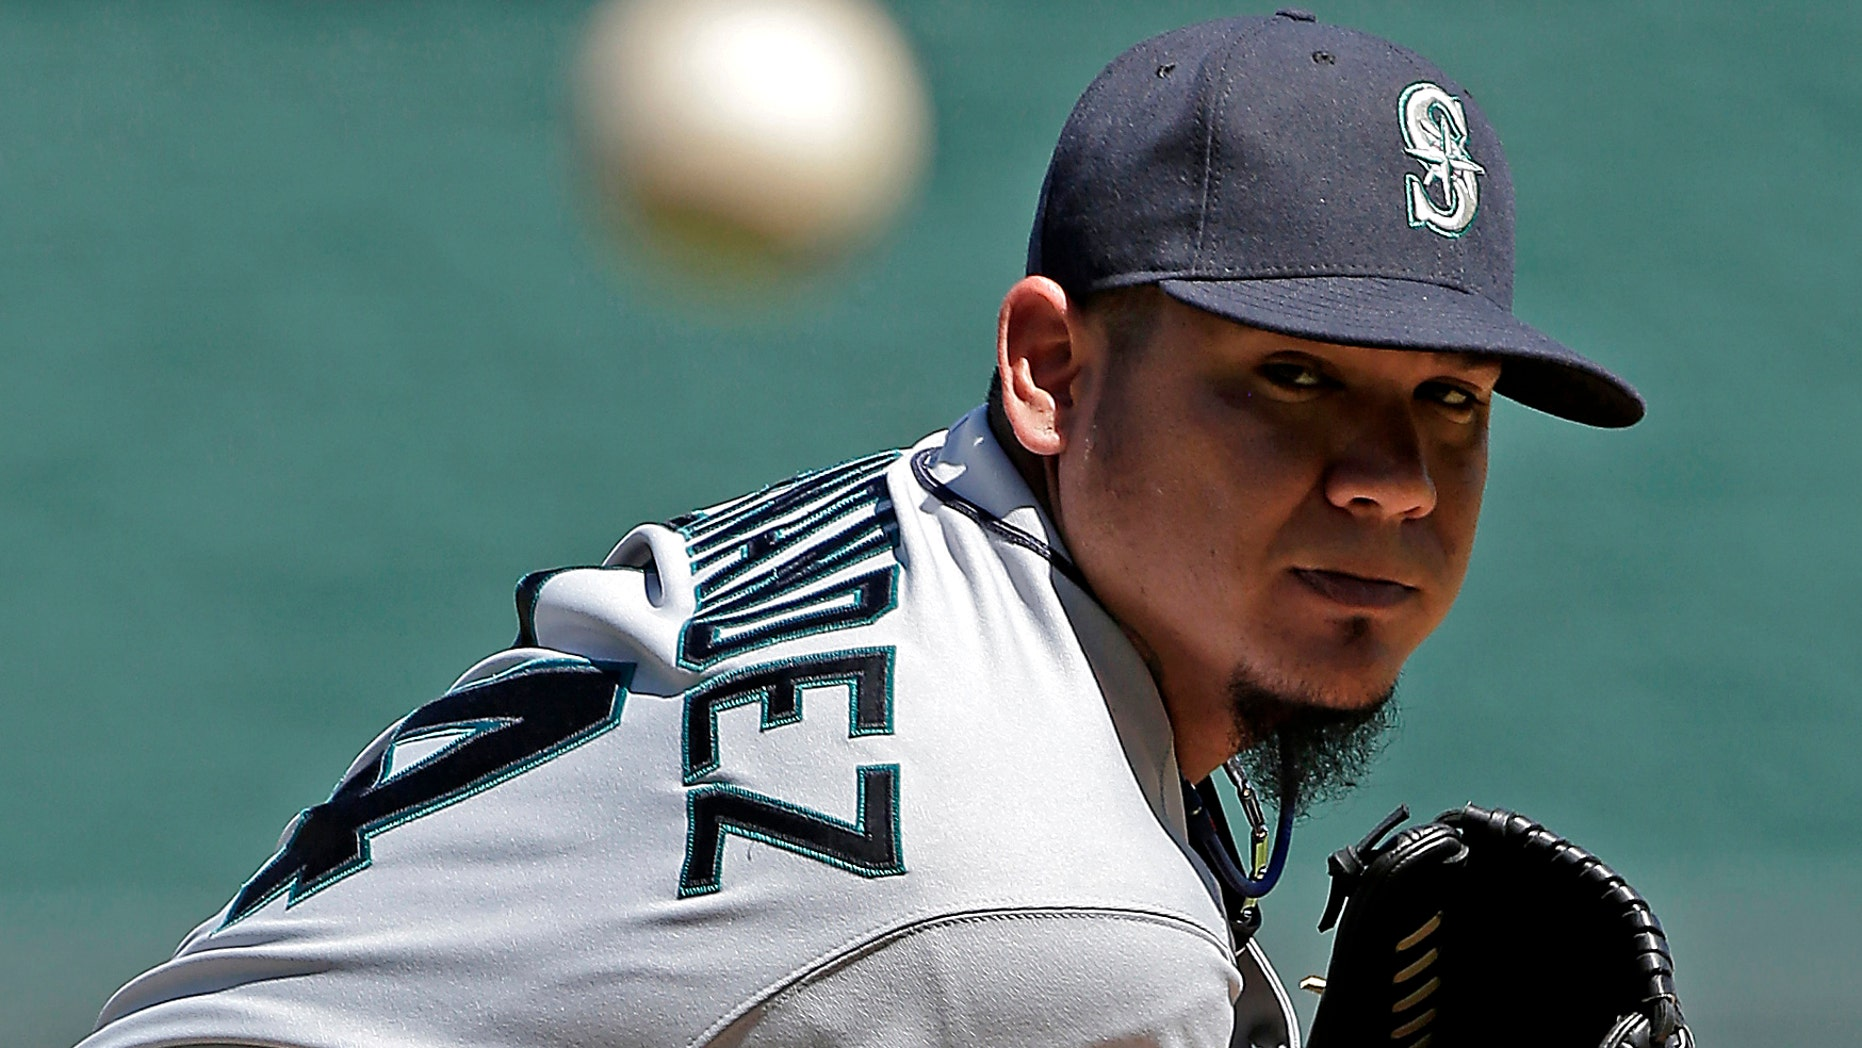 Seattle Mariners starting pitcher Felix Hernandez in a game against the Kansas City Royals, Sept. 2, 2013, in Kansas City, Mo. (AP Photo/Charlie Riedel)